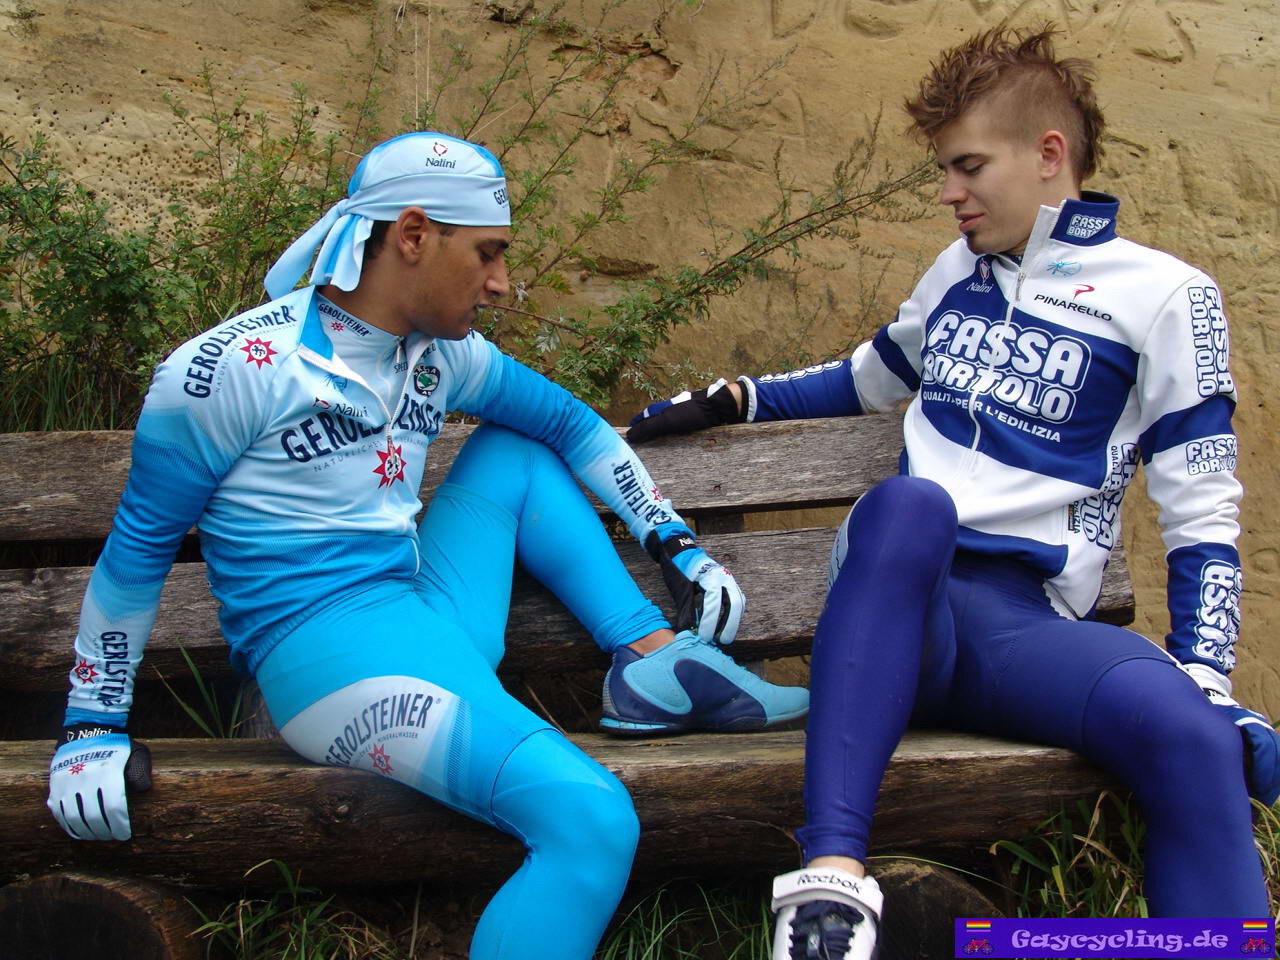 TeenMuscleBoy: Two cyclists